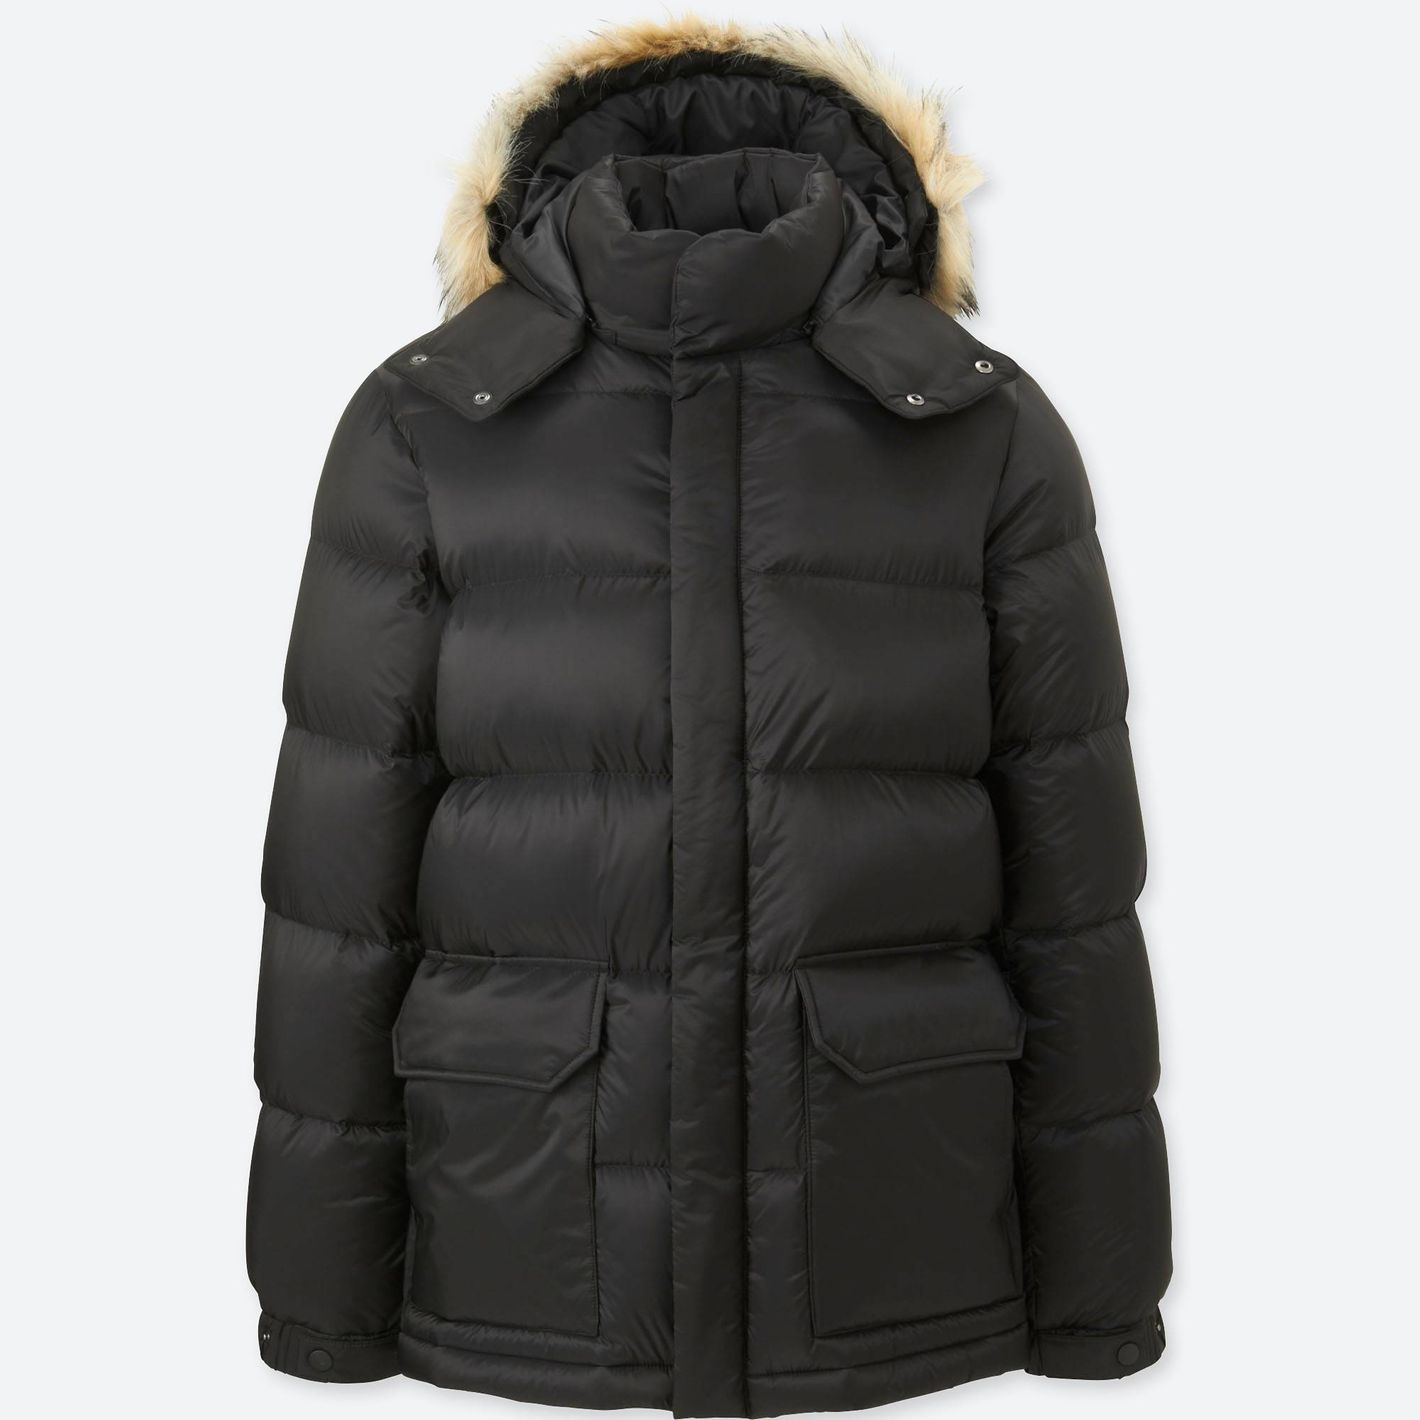 Uniqlo Men's Down Jacket